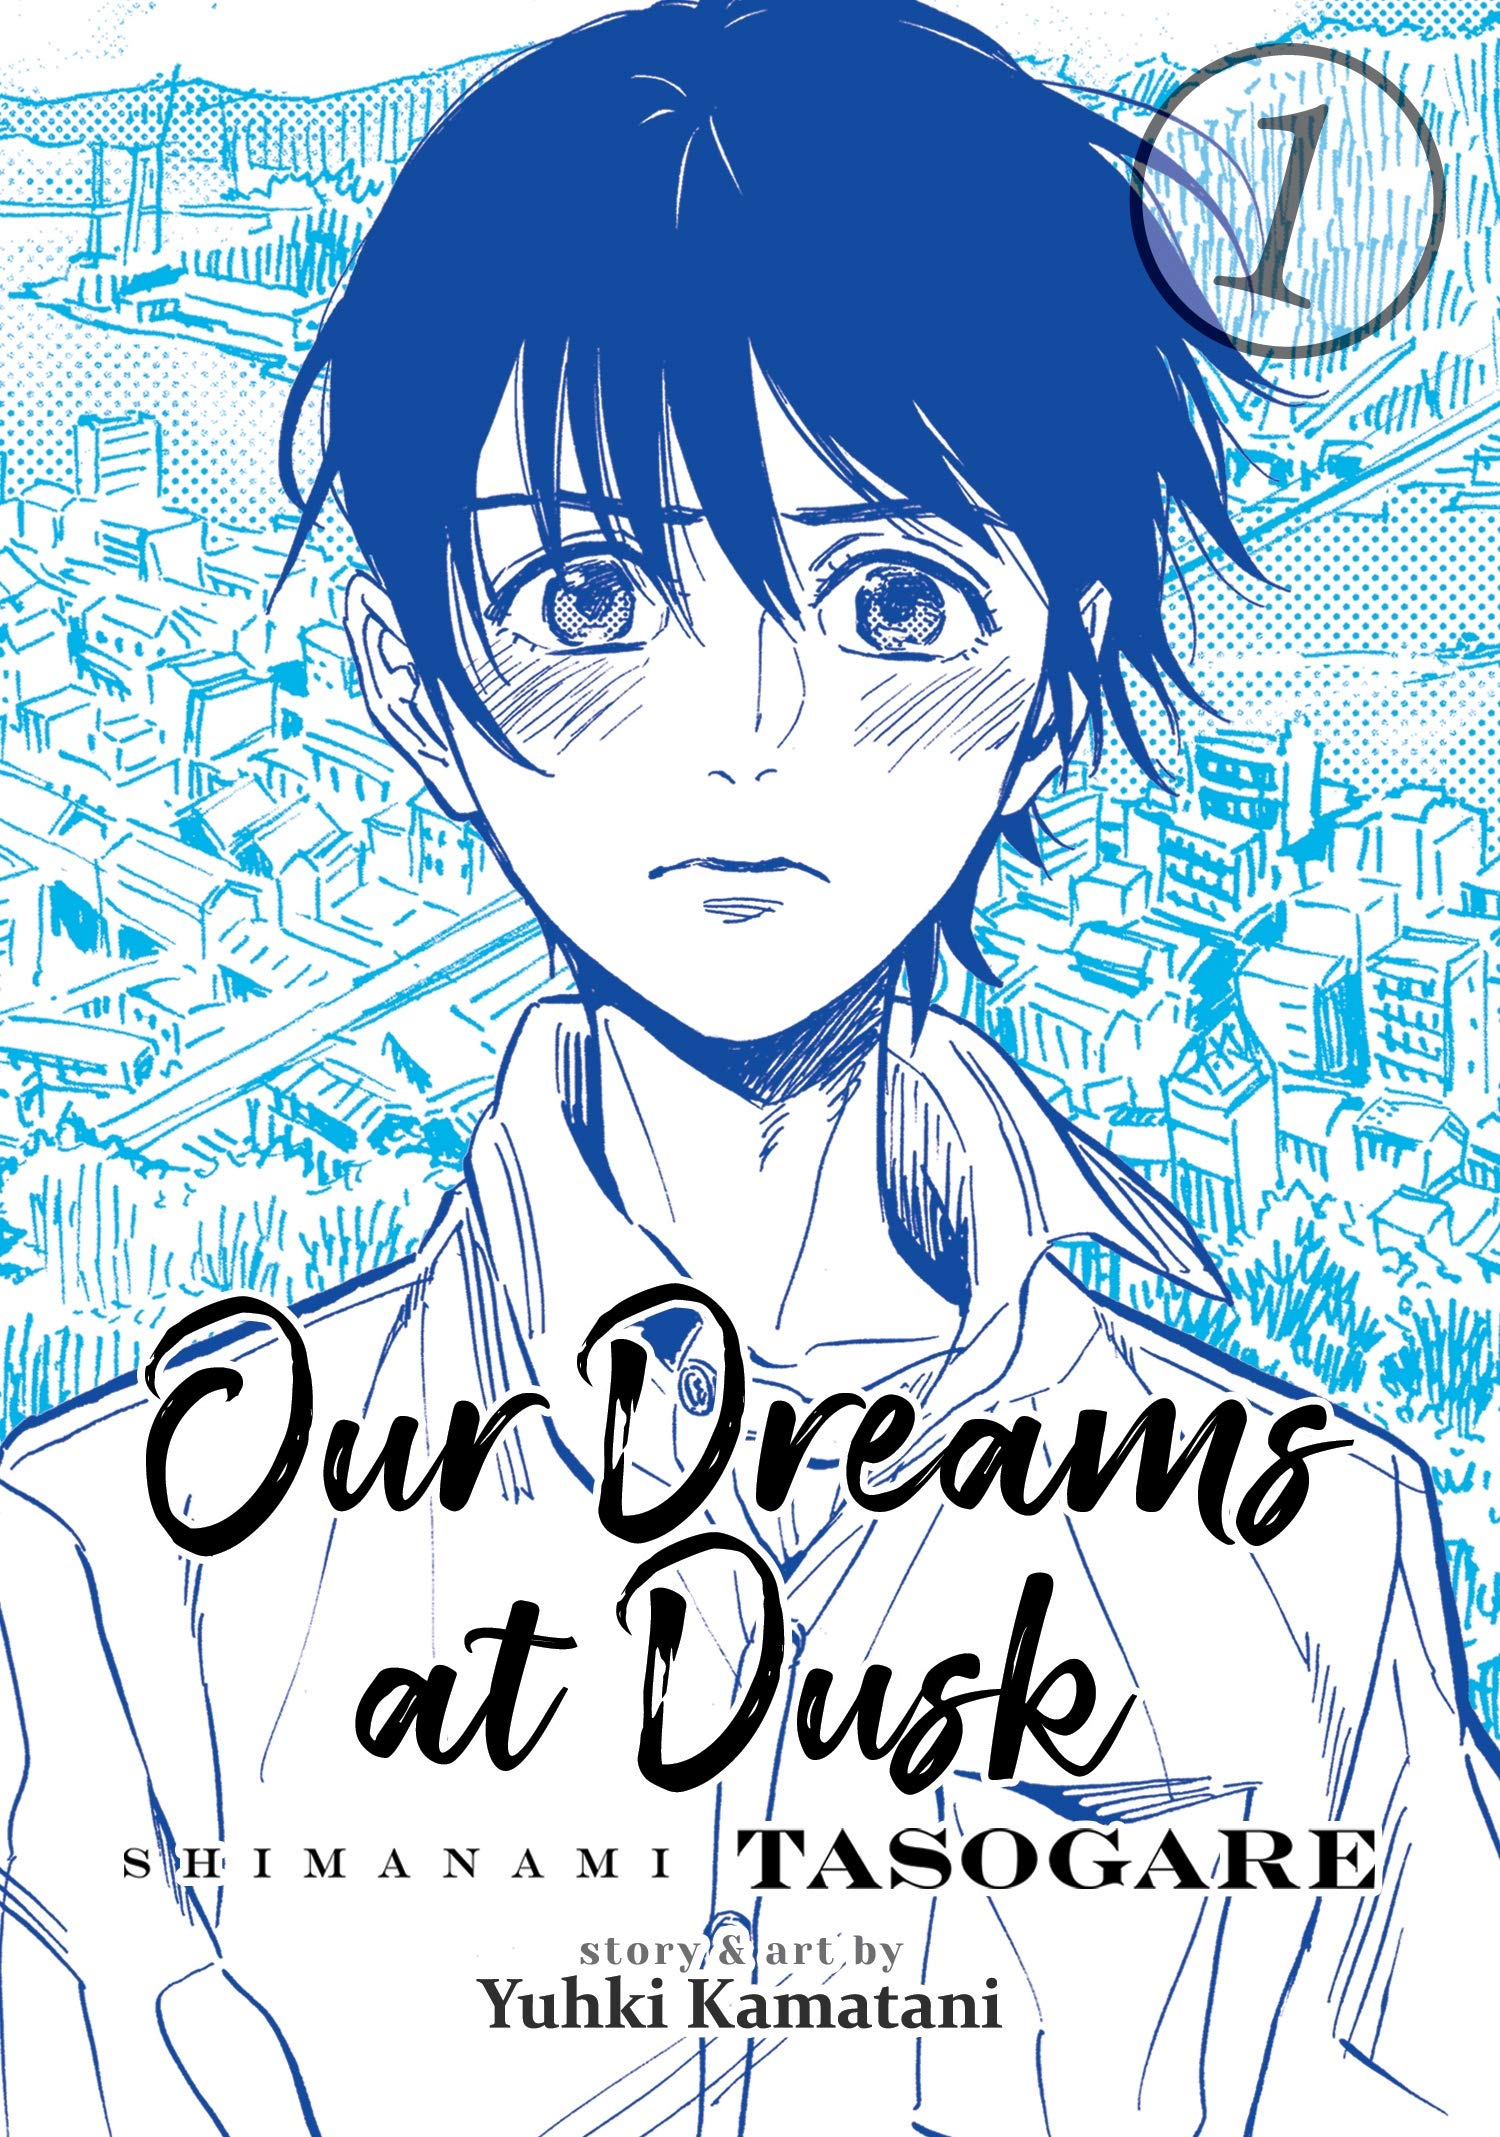 """Cover of """"Our Dreams at Dusk"""" manga with a monotone illustration of the main character looking disheveled and distraught, with a cityscape in the background."""